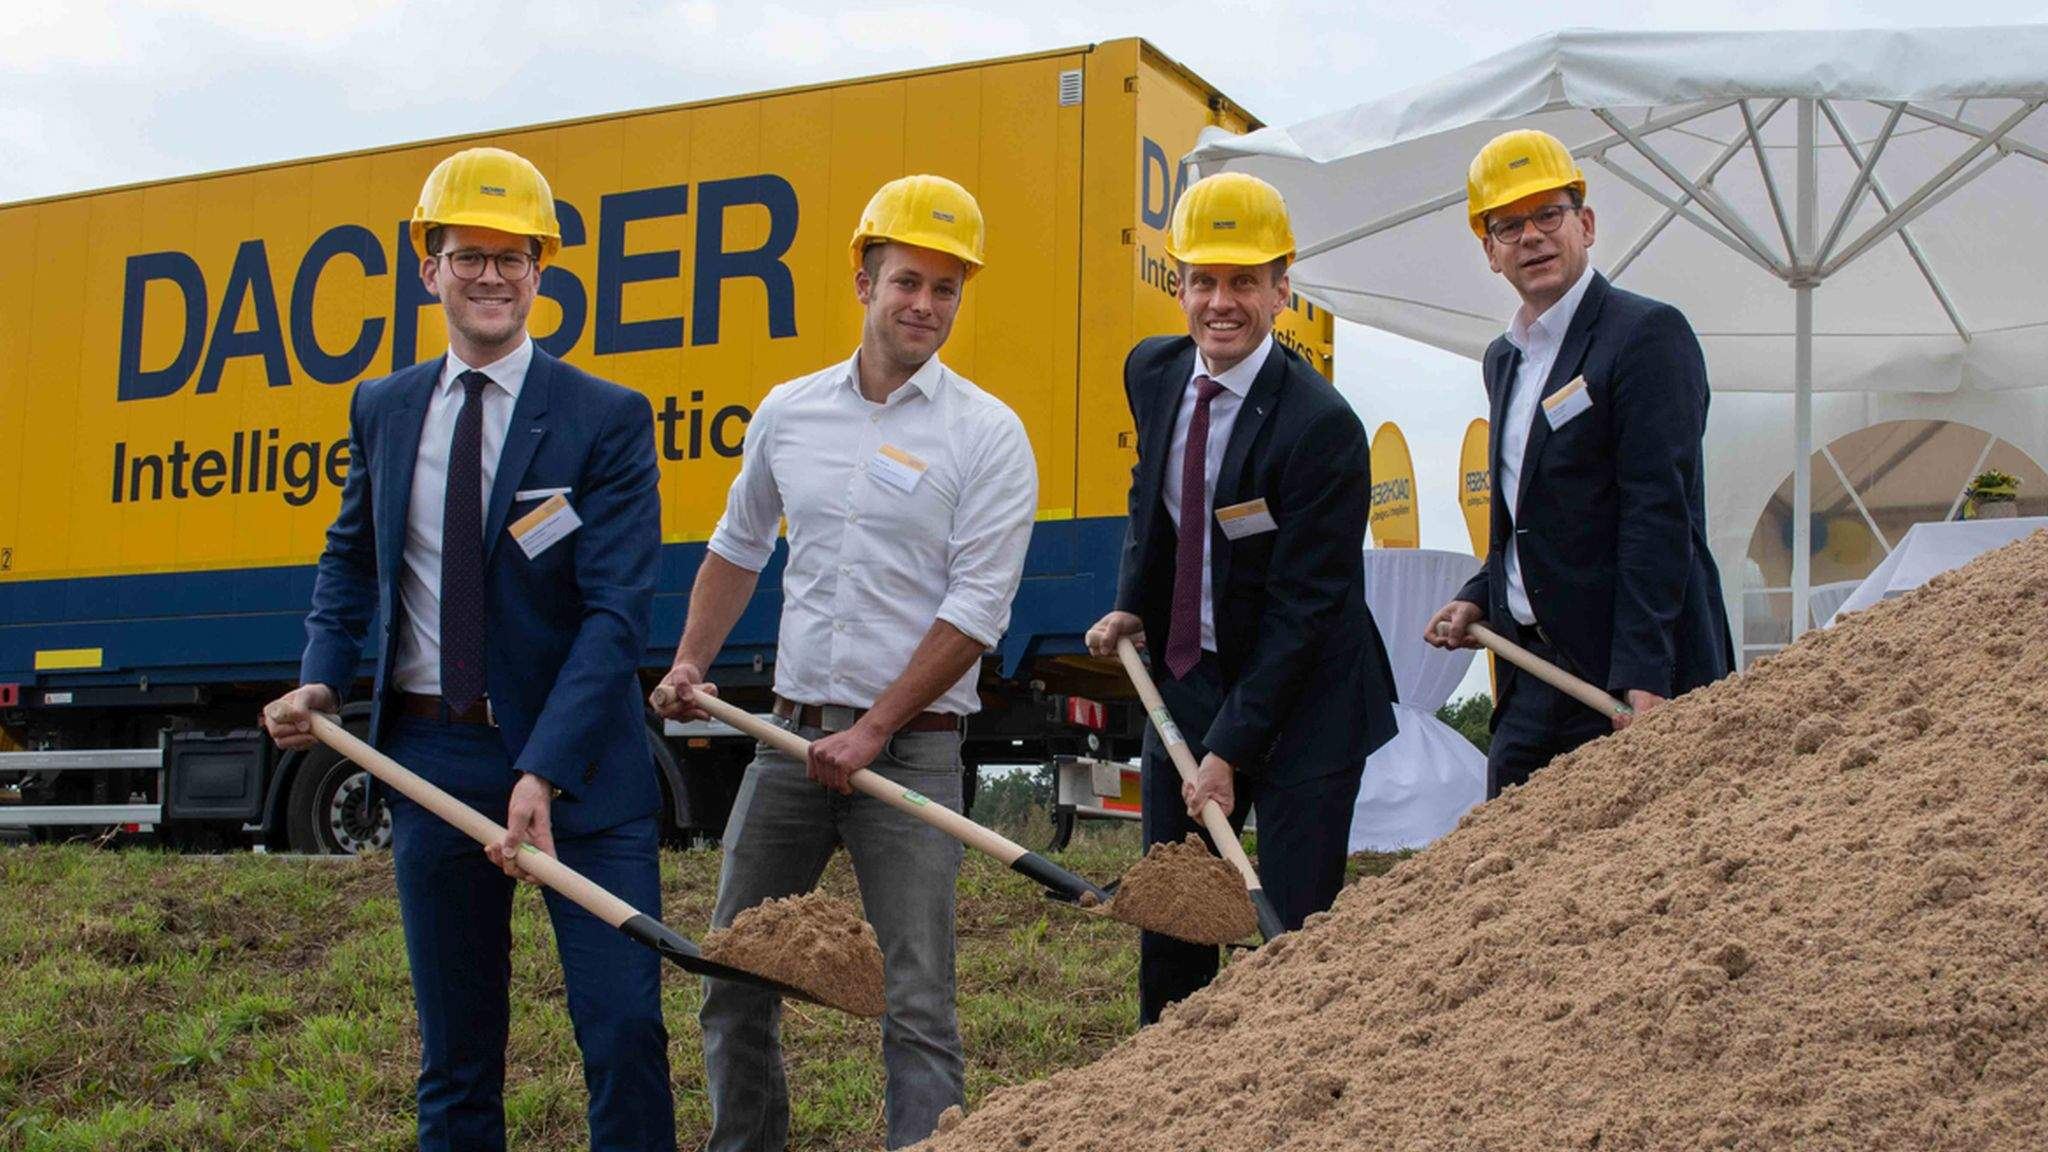 Jan-Ferdinand Lühmann, Operations Manager European Logistics DACHSER Neumünster, Paul Bartram, Bartram Bau-Systeme, Alexander Tonn, Managing Director European Logistics Germany at DACHSER, and Dr. Olaf Tauras, Mayor of Neumünster (from left to right)